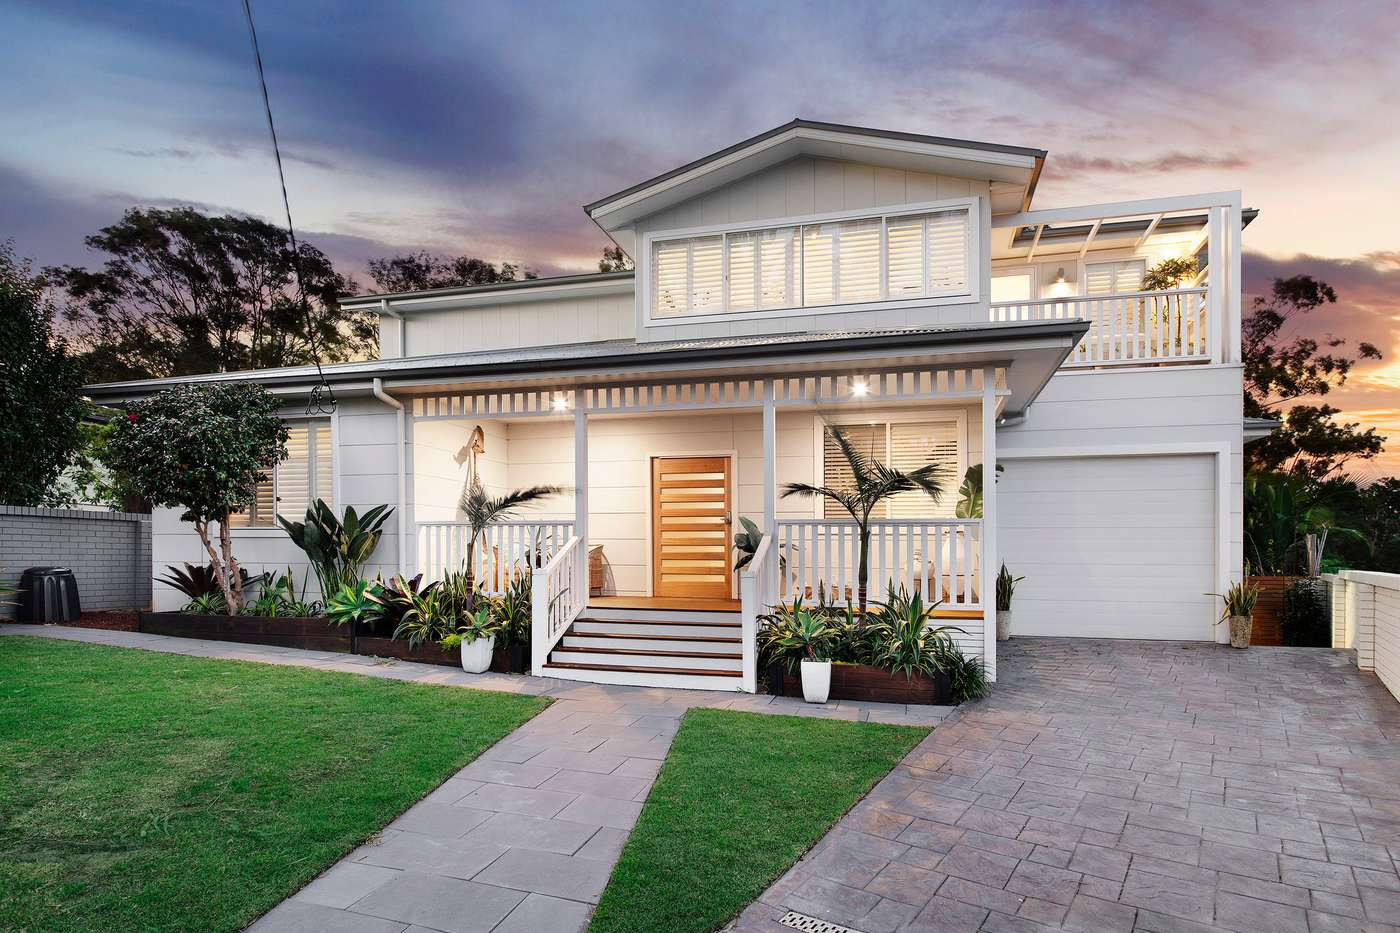 Main view of Homely house listing, 12 Serpentine Crescent, North Balgowlah, NSW 2093